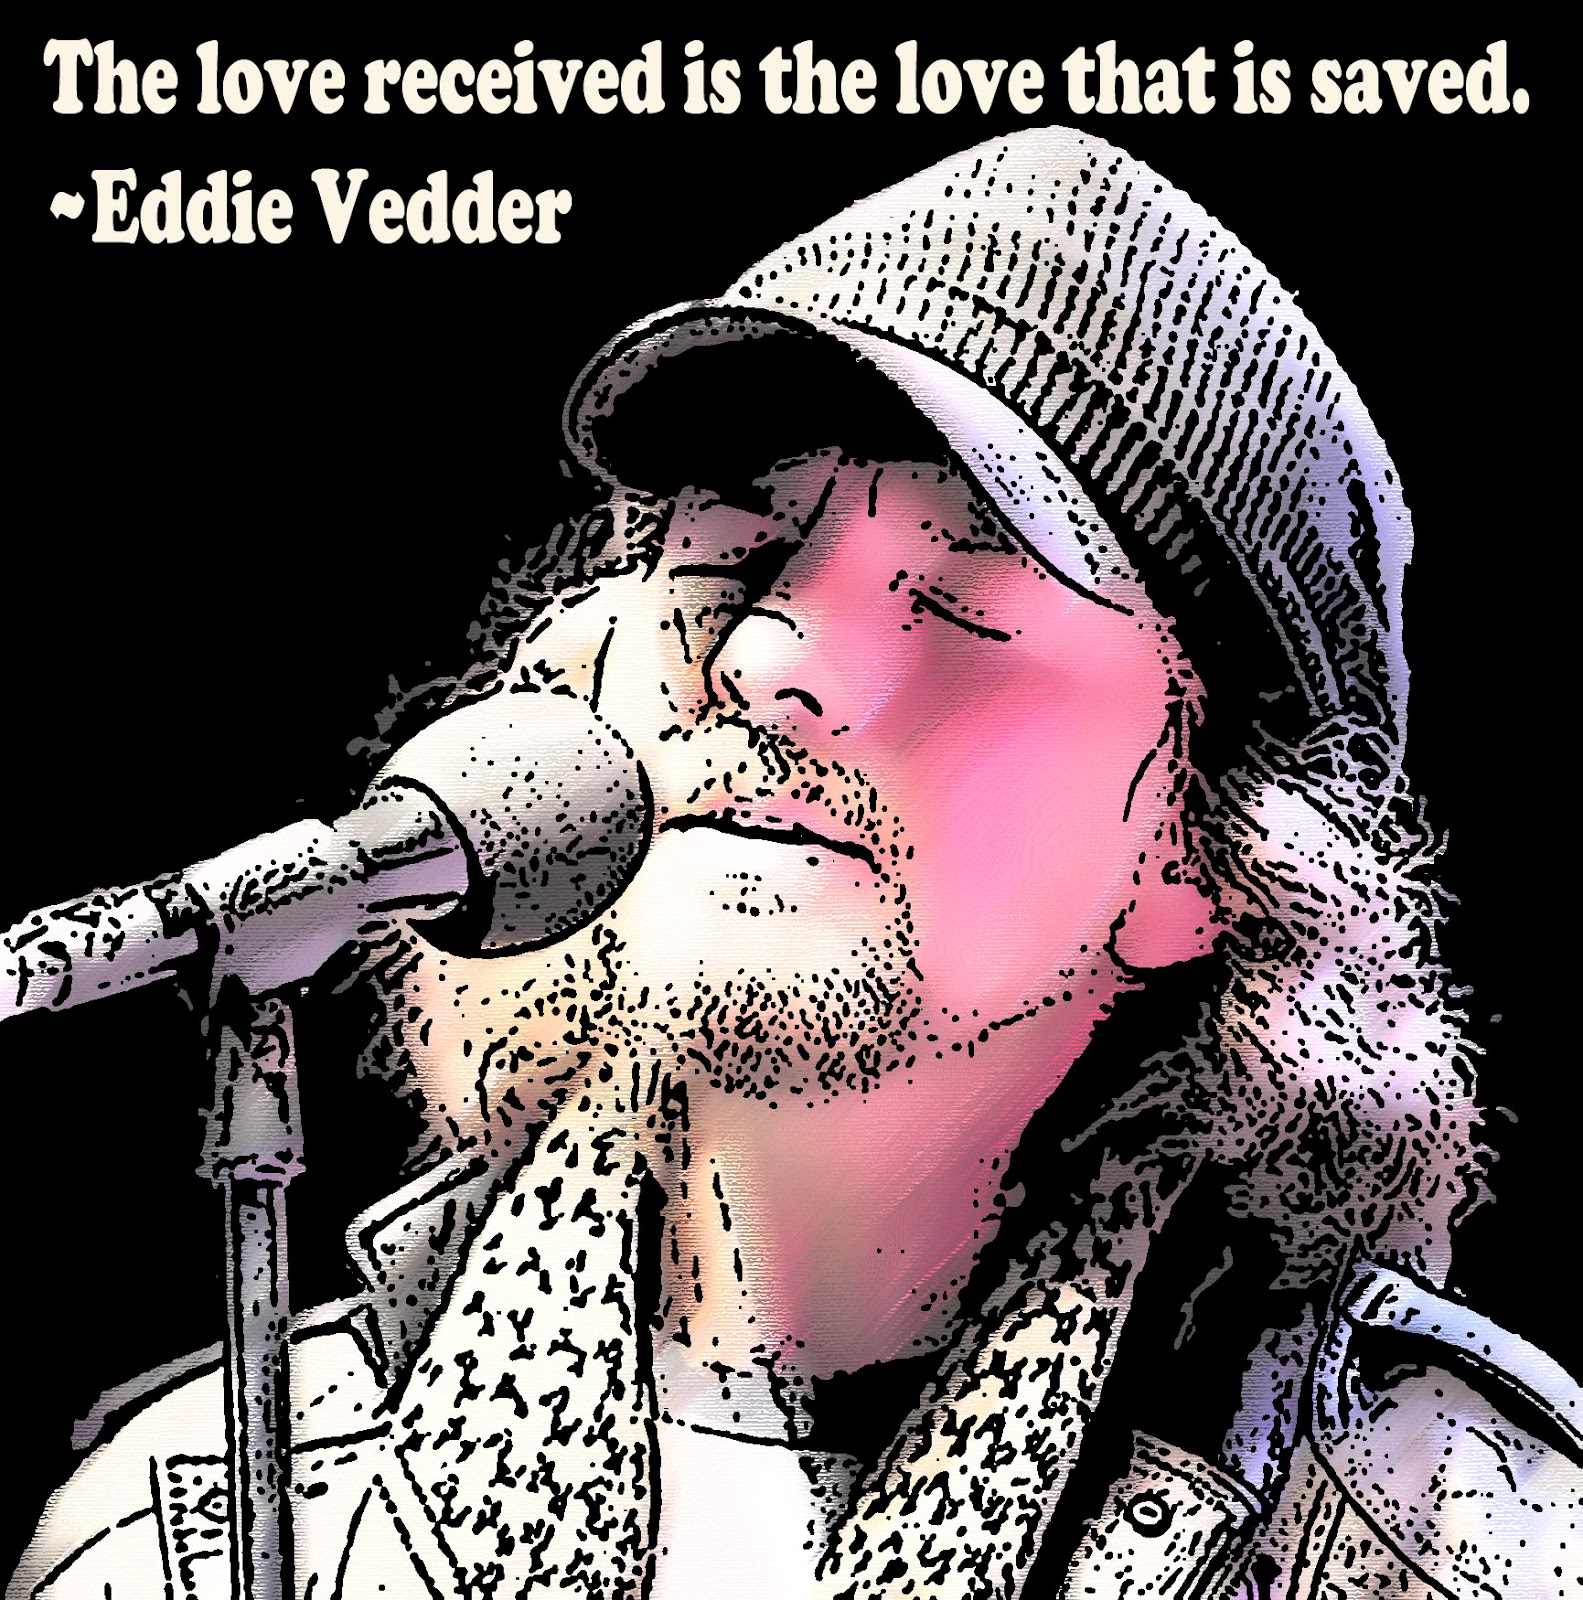 Eddie Vedder's quote #8